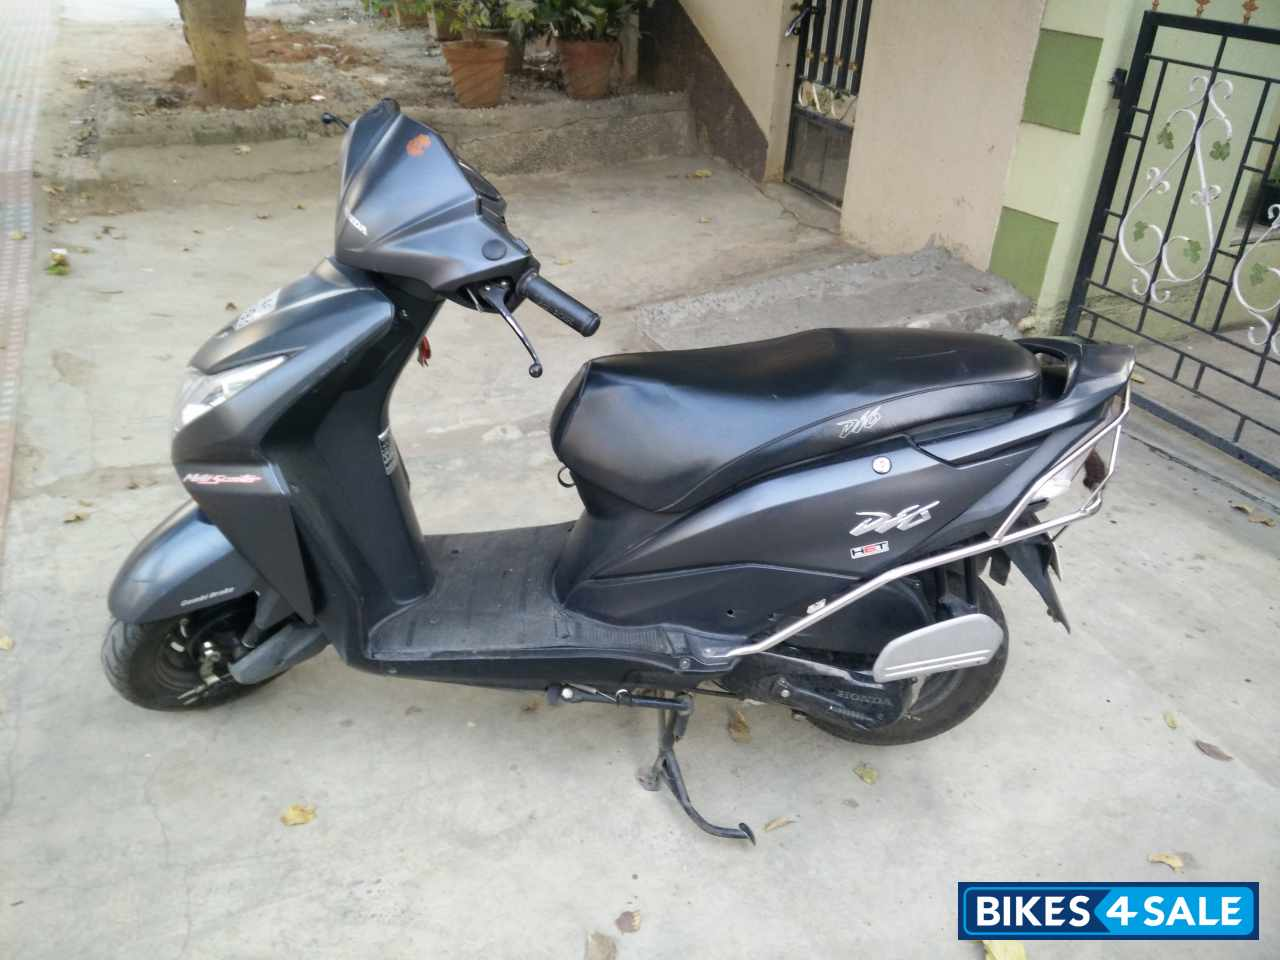 Grey Honda Dio for sale in Bangalore. Bike in excellent condition, insurance till November 2016 ...